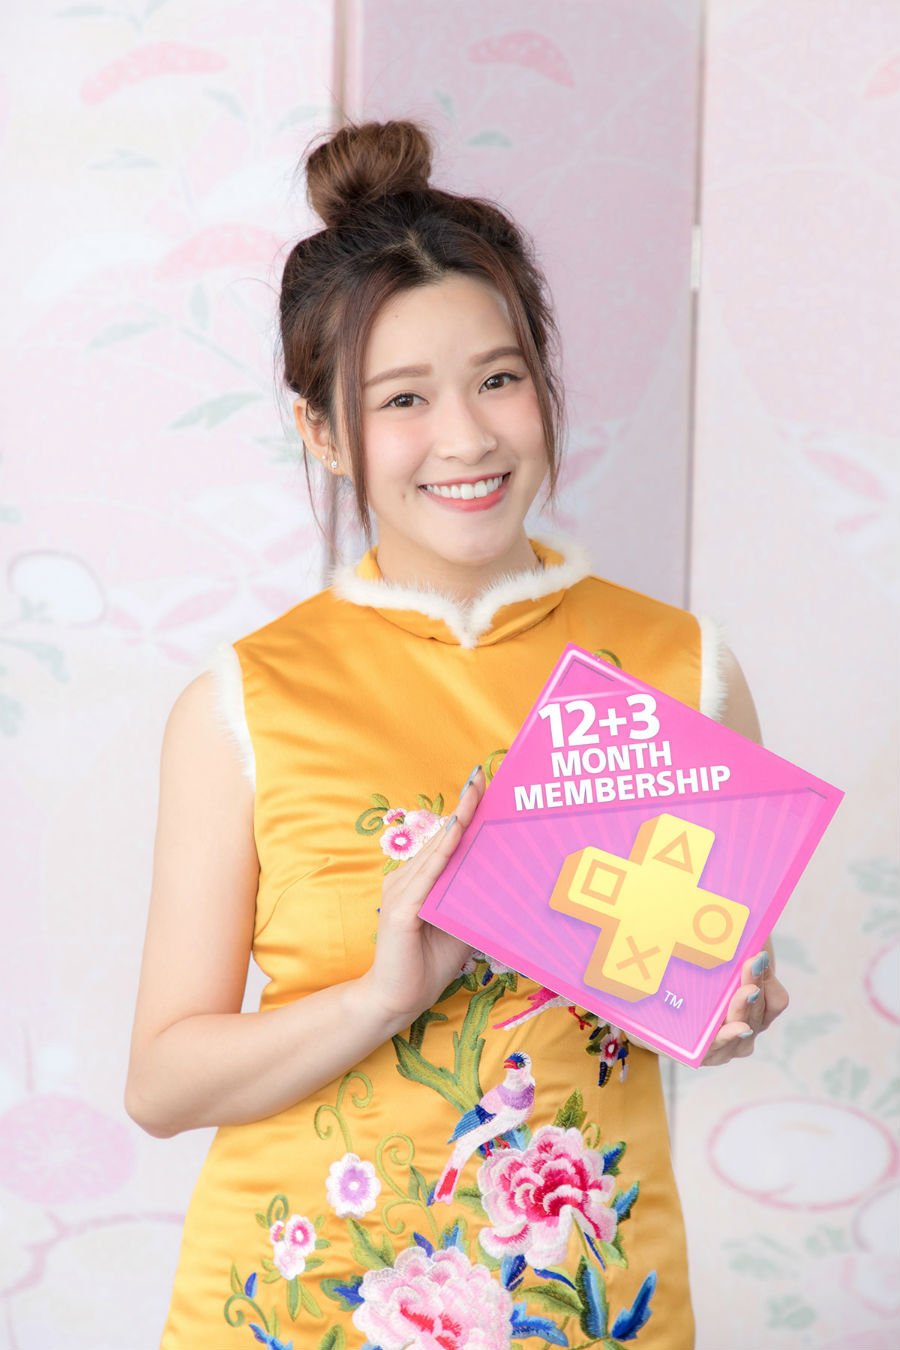 Girl holding sign for PS Plus 12 + 3 month promotion